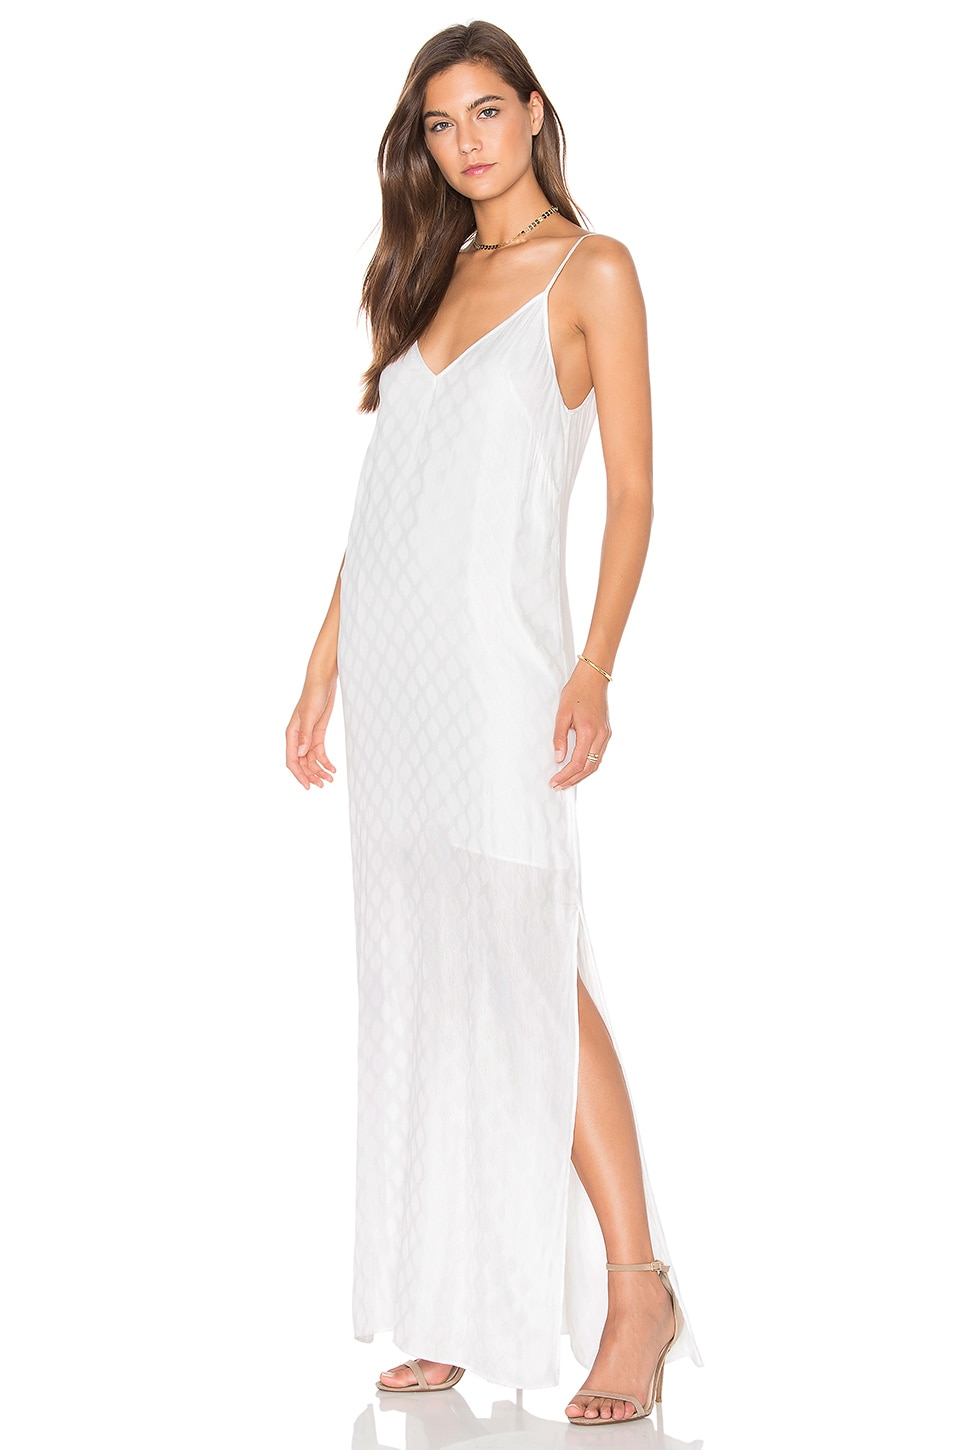 Buy The Vermont Maxi Dress by TY-LR